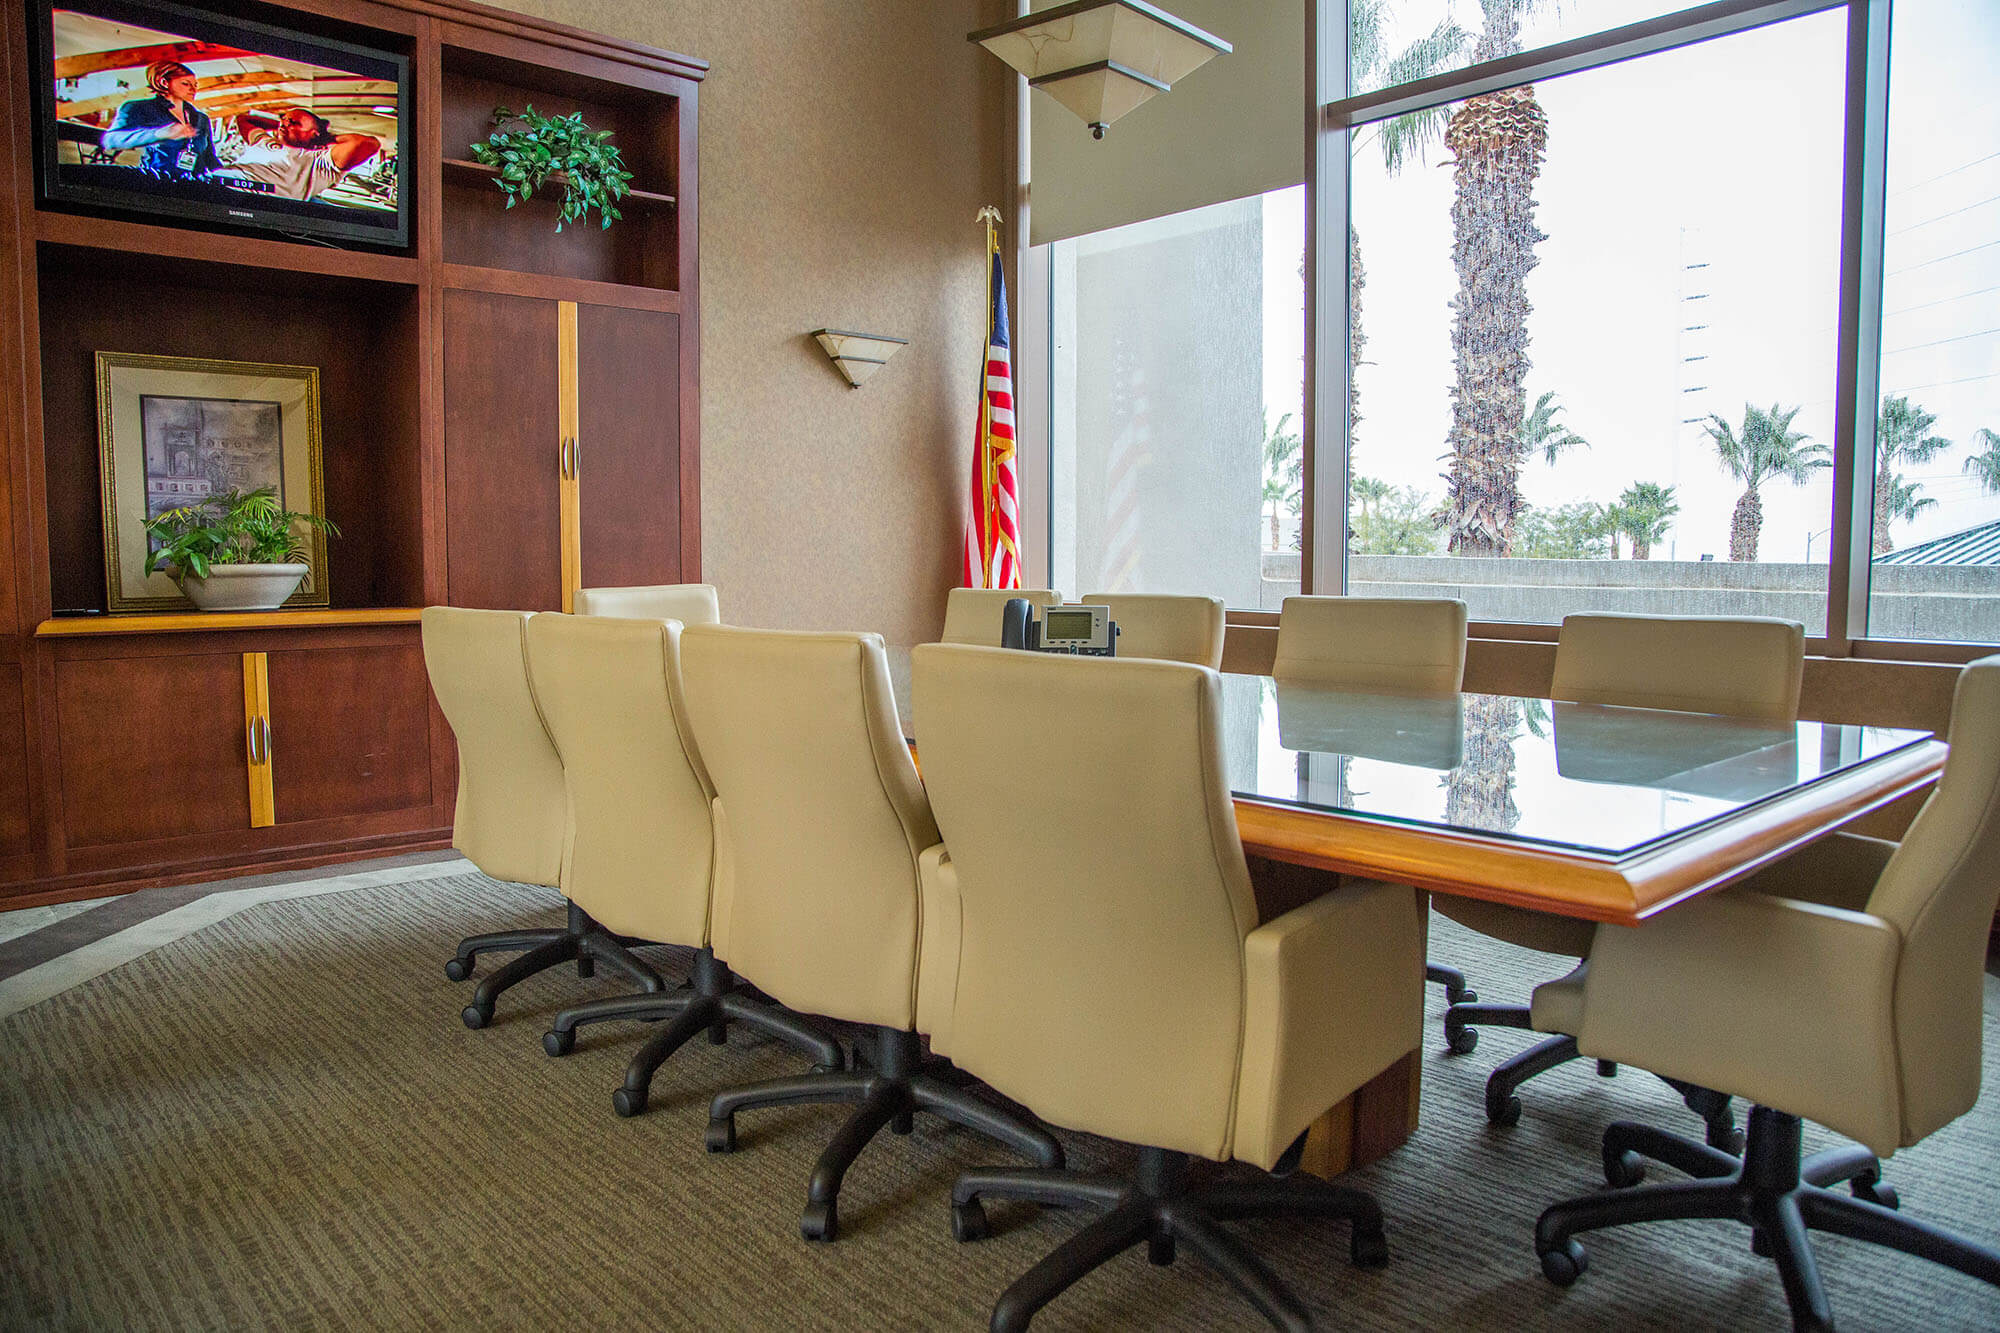 Conference Room Size Space Planning: What Size Do I Need?